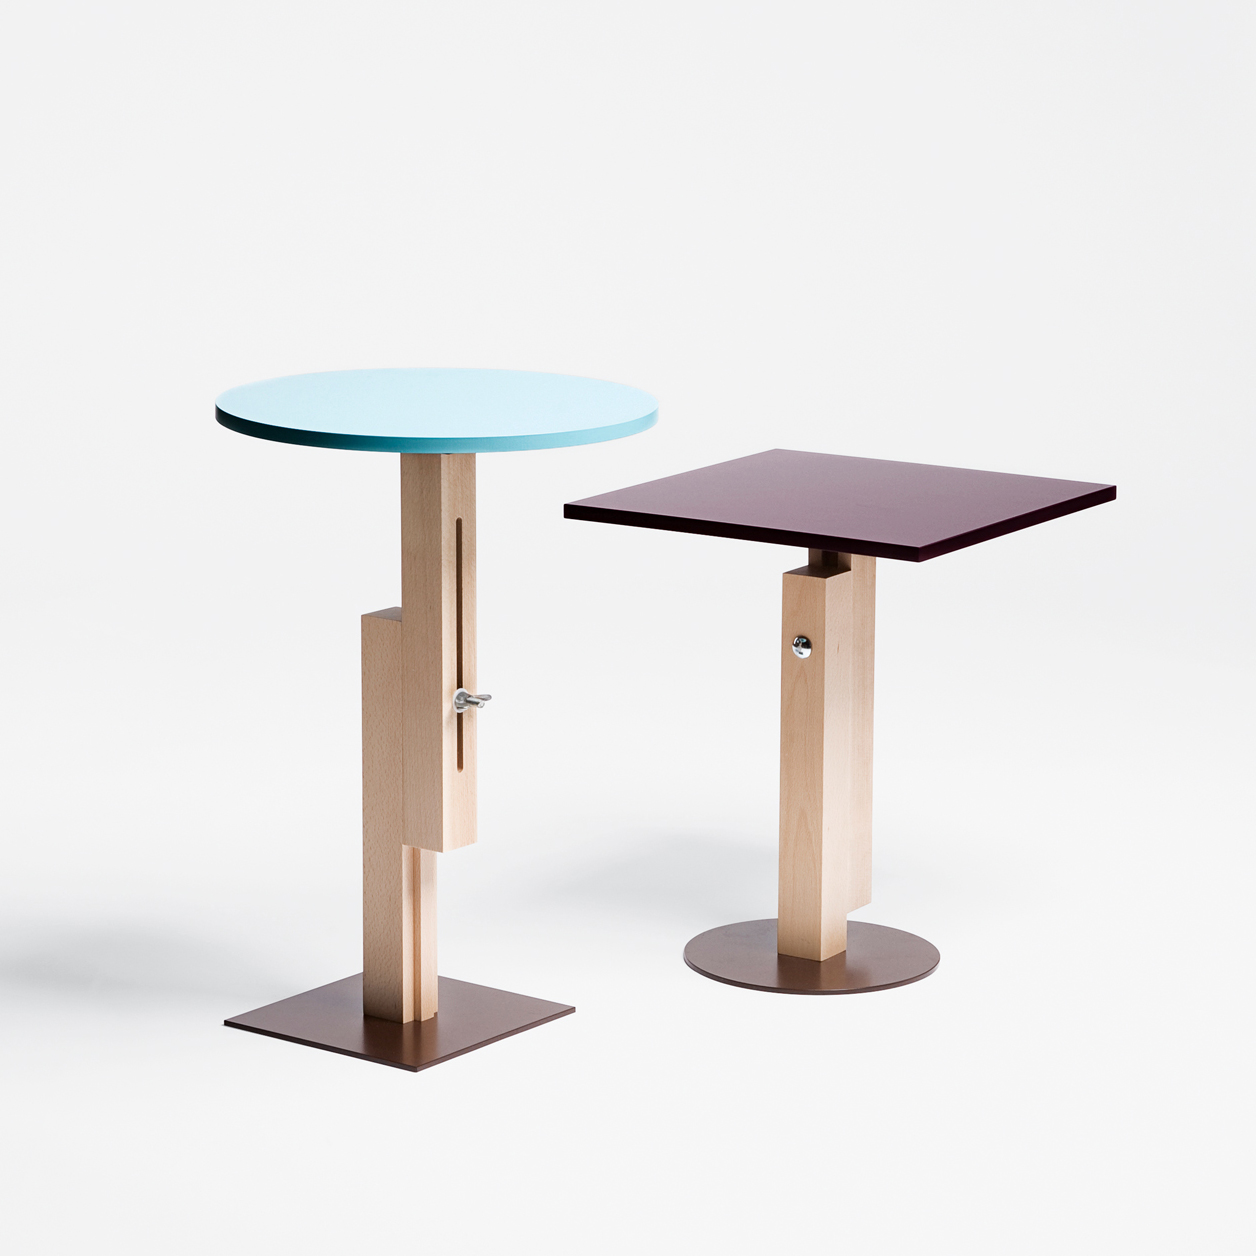 Konstantin Grcic's work 